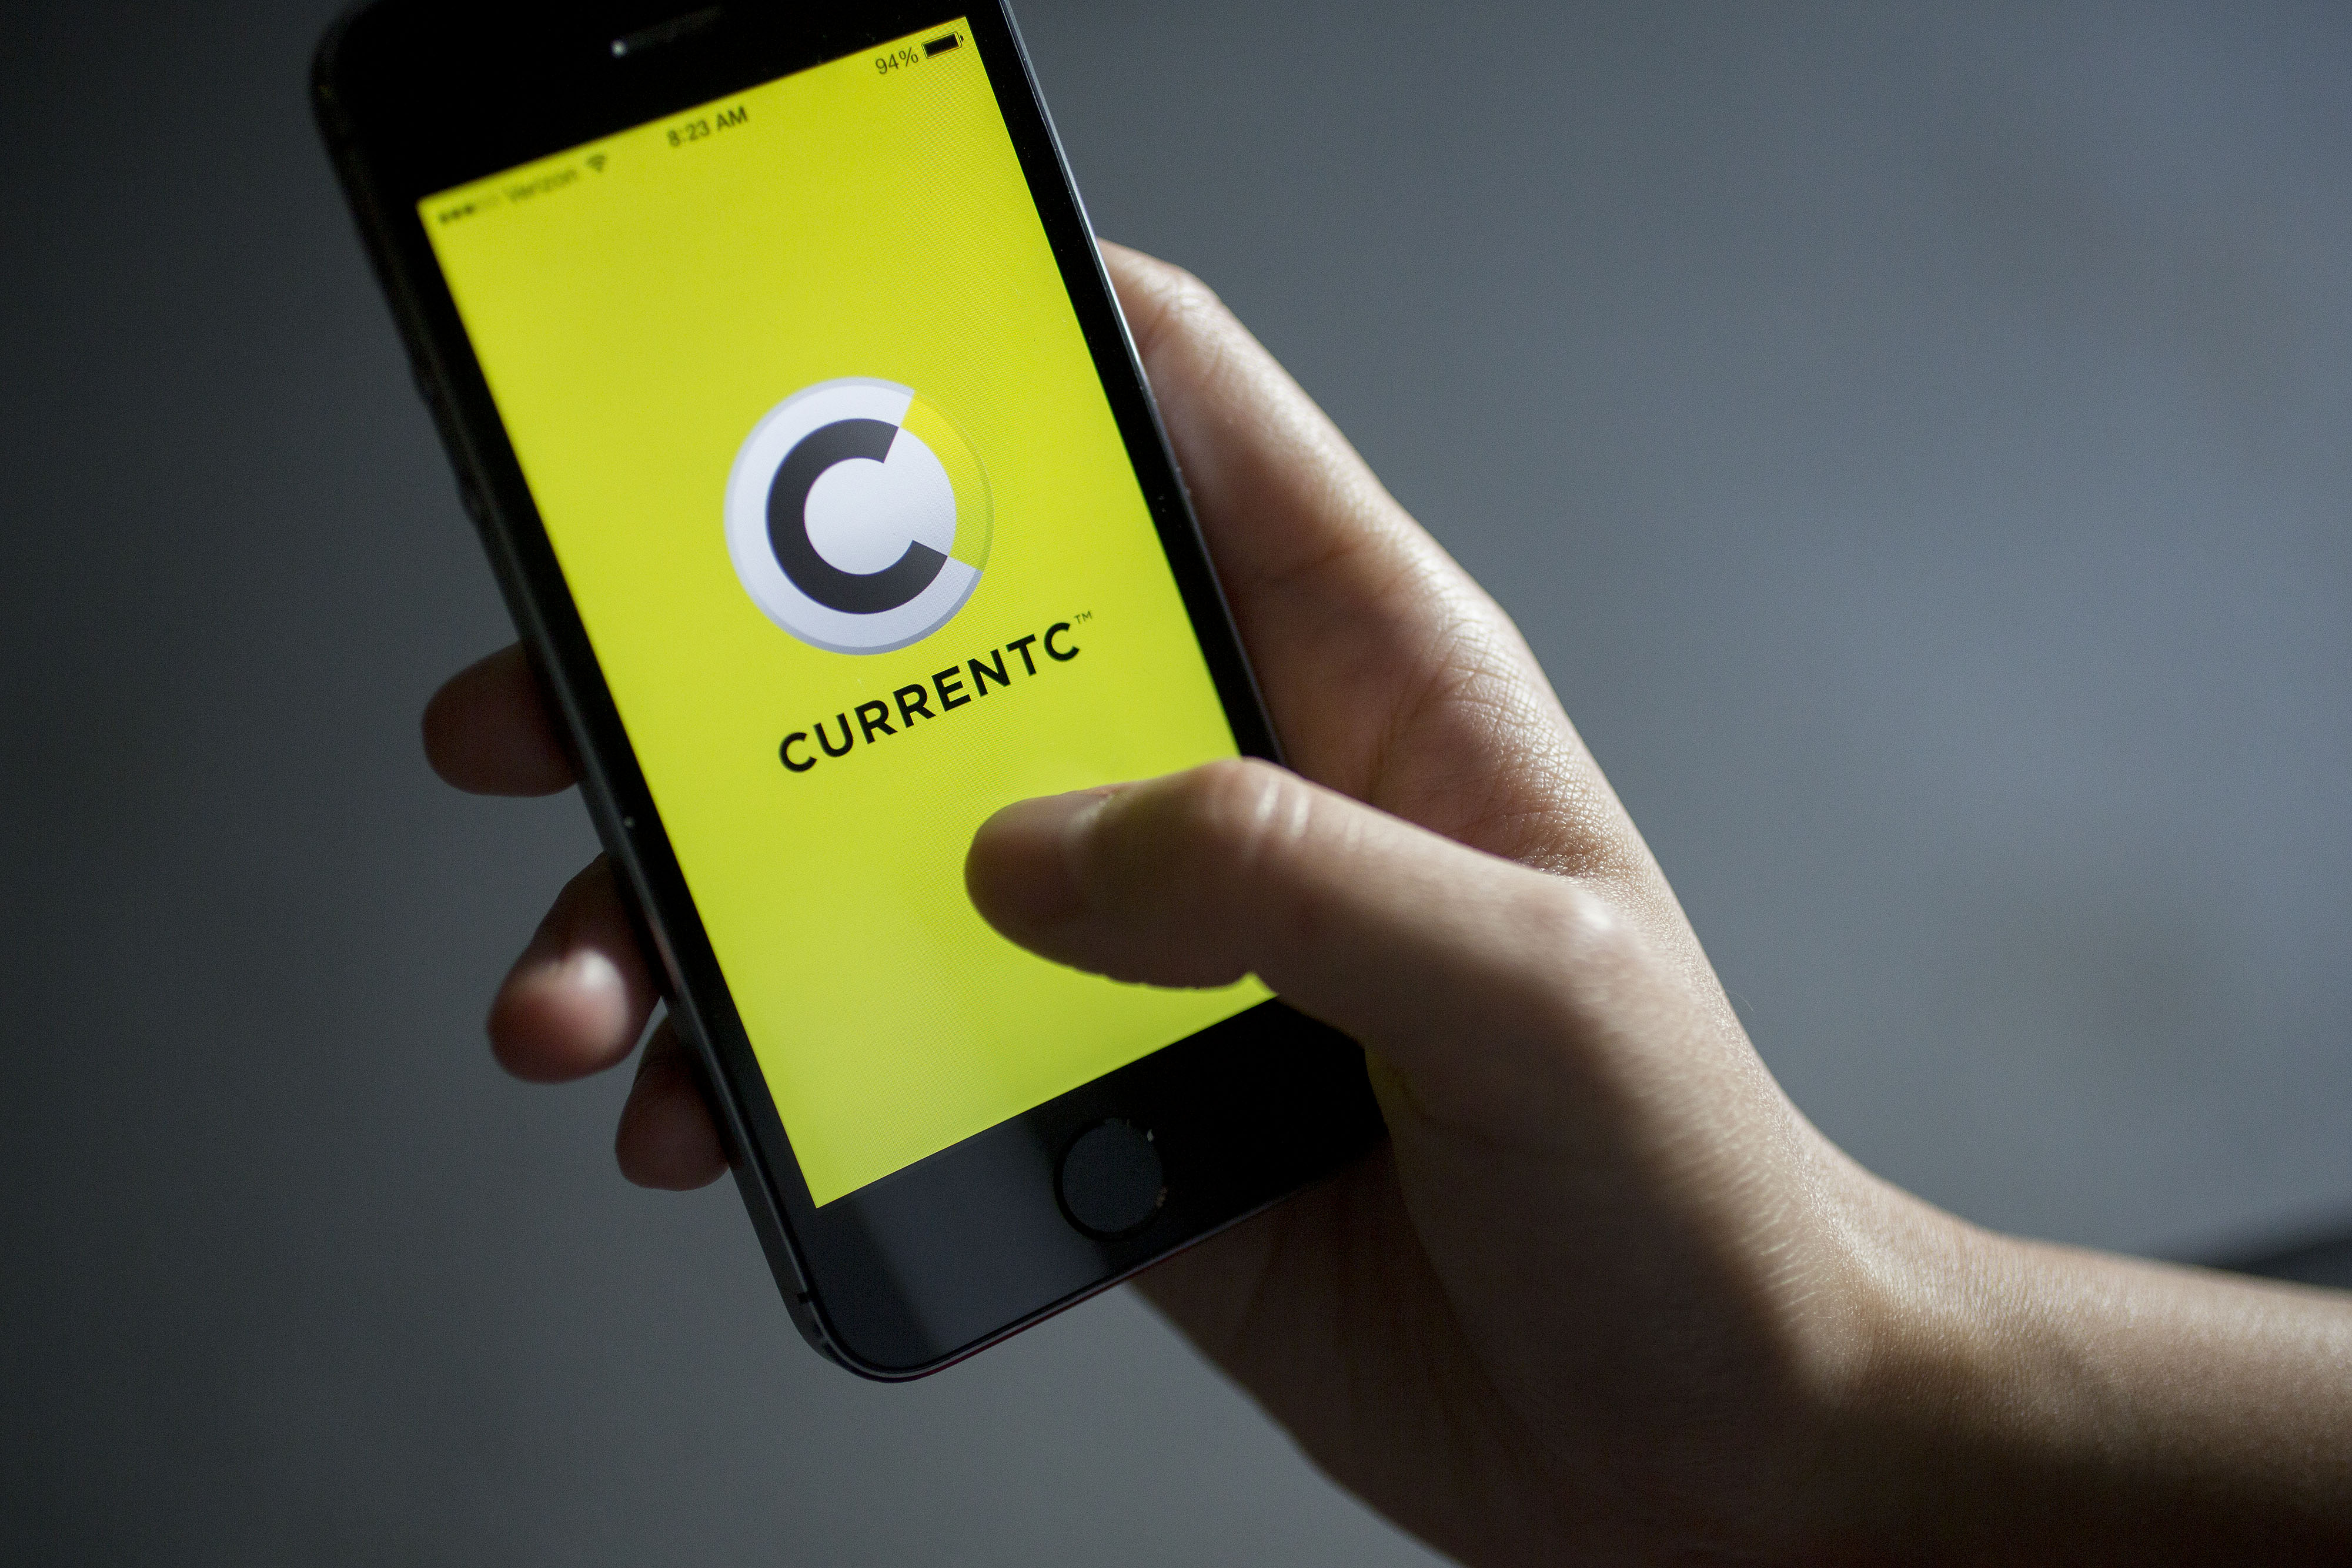 Apple Pay Rival CurrentC Hacked During Test Of Payments Tech